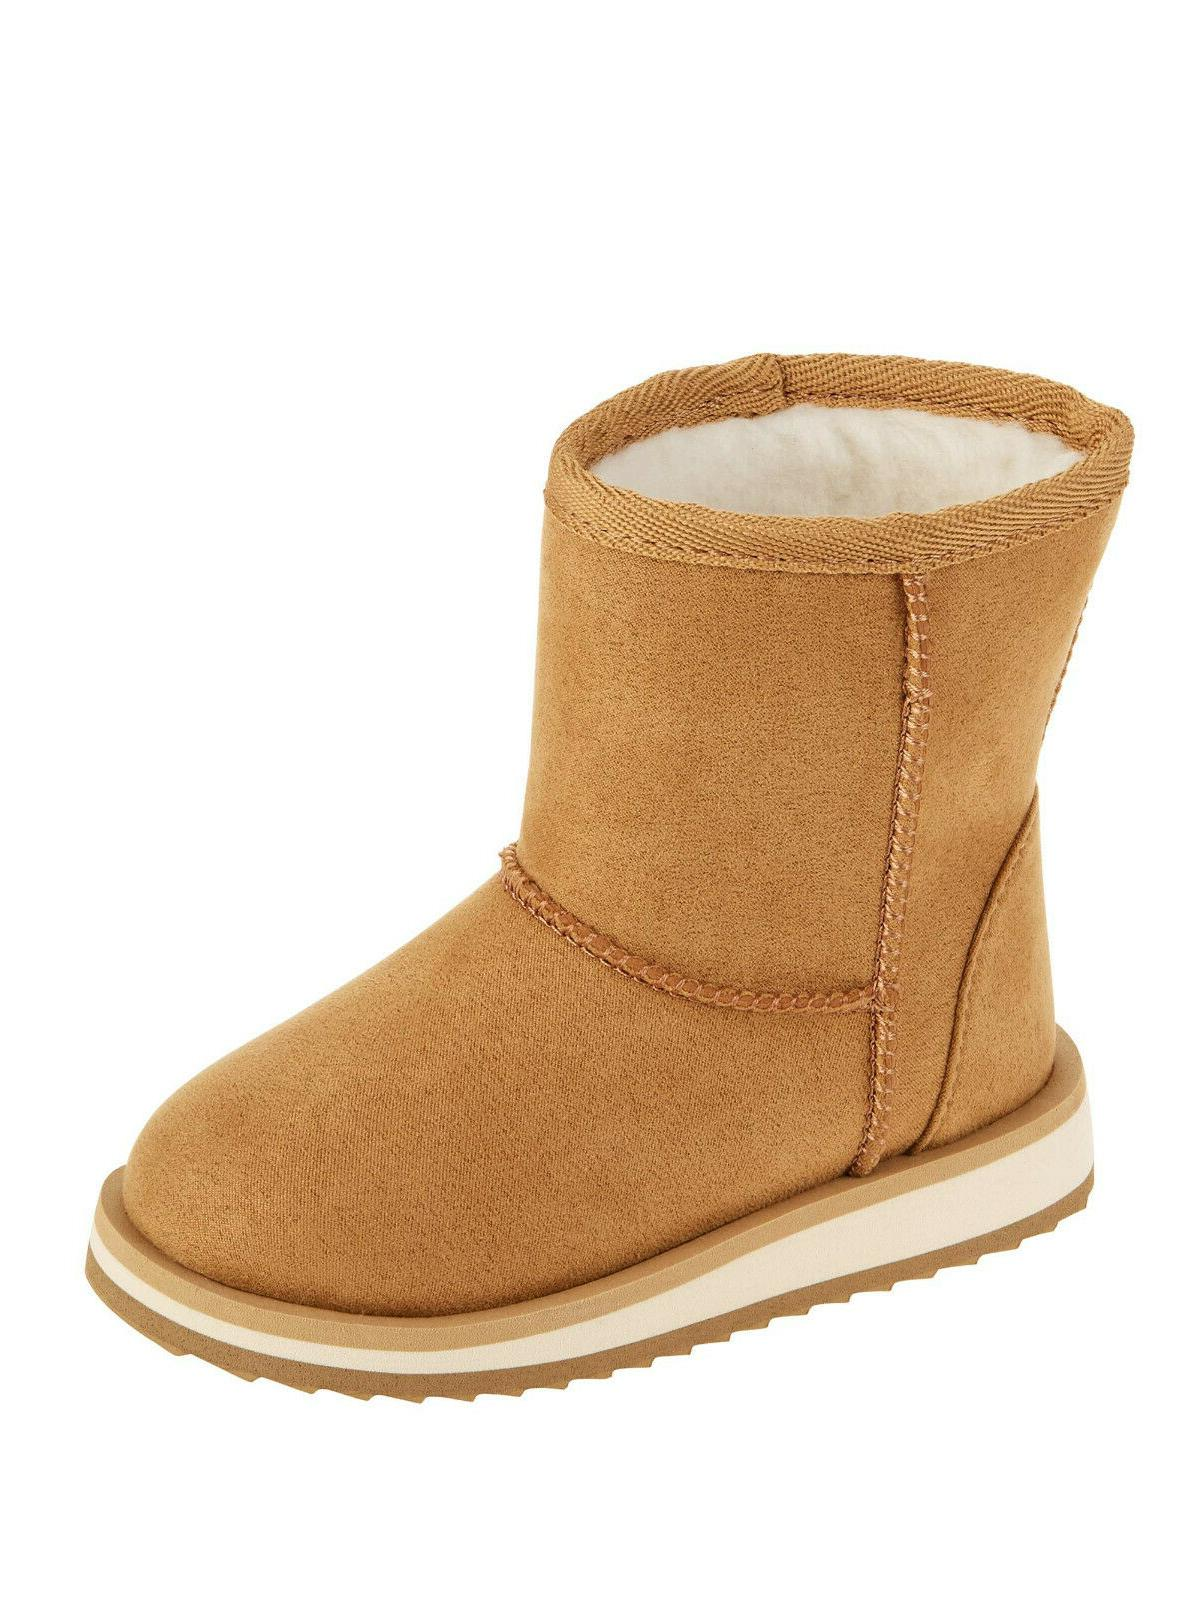 new girls faux shearling lined slip on